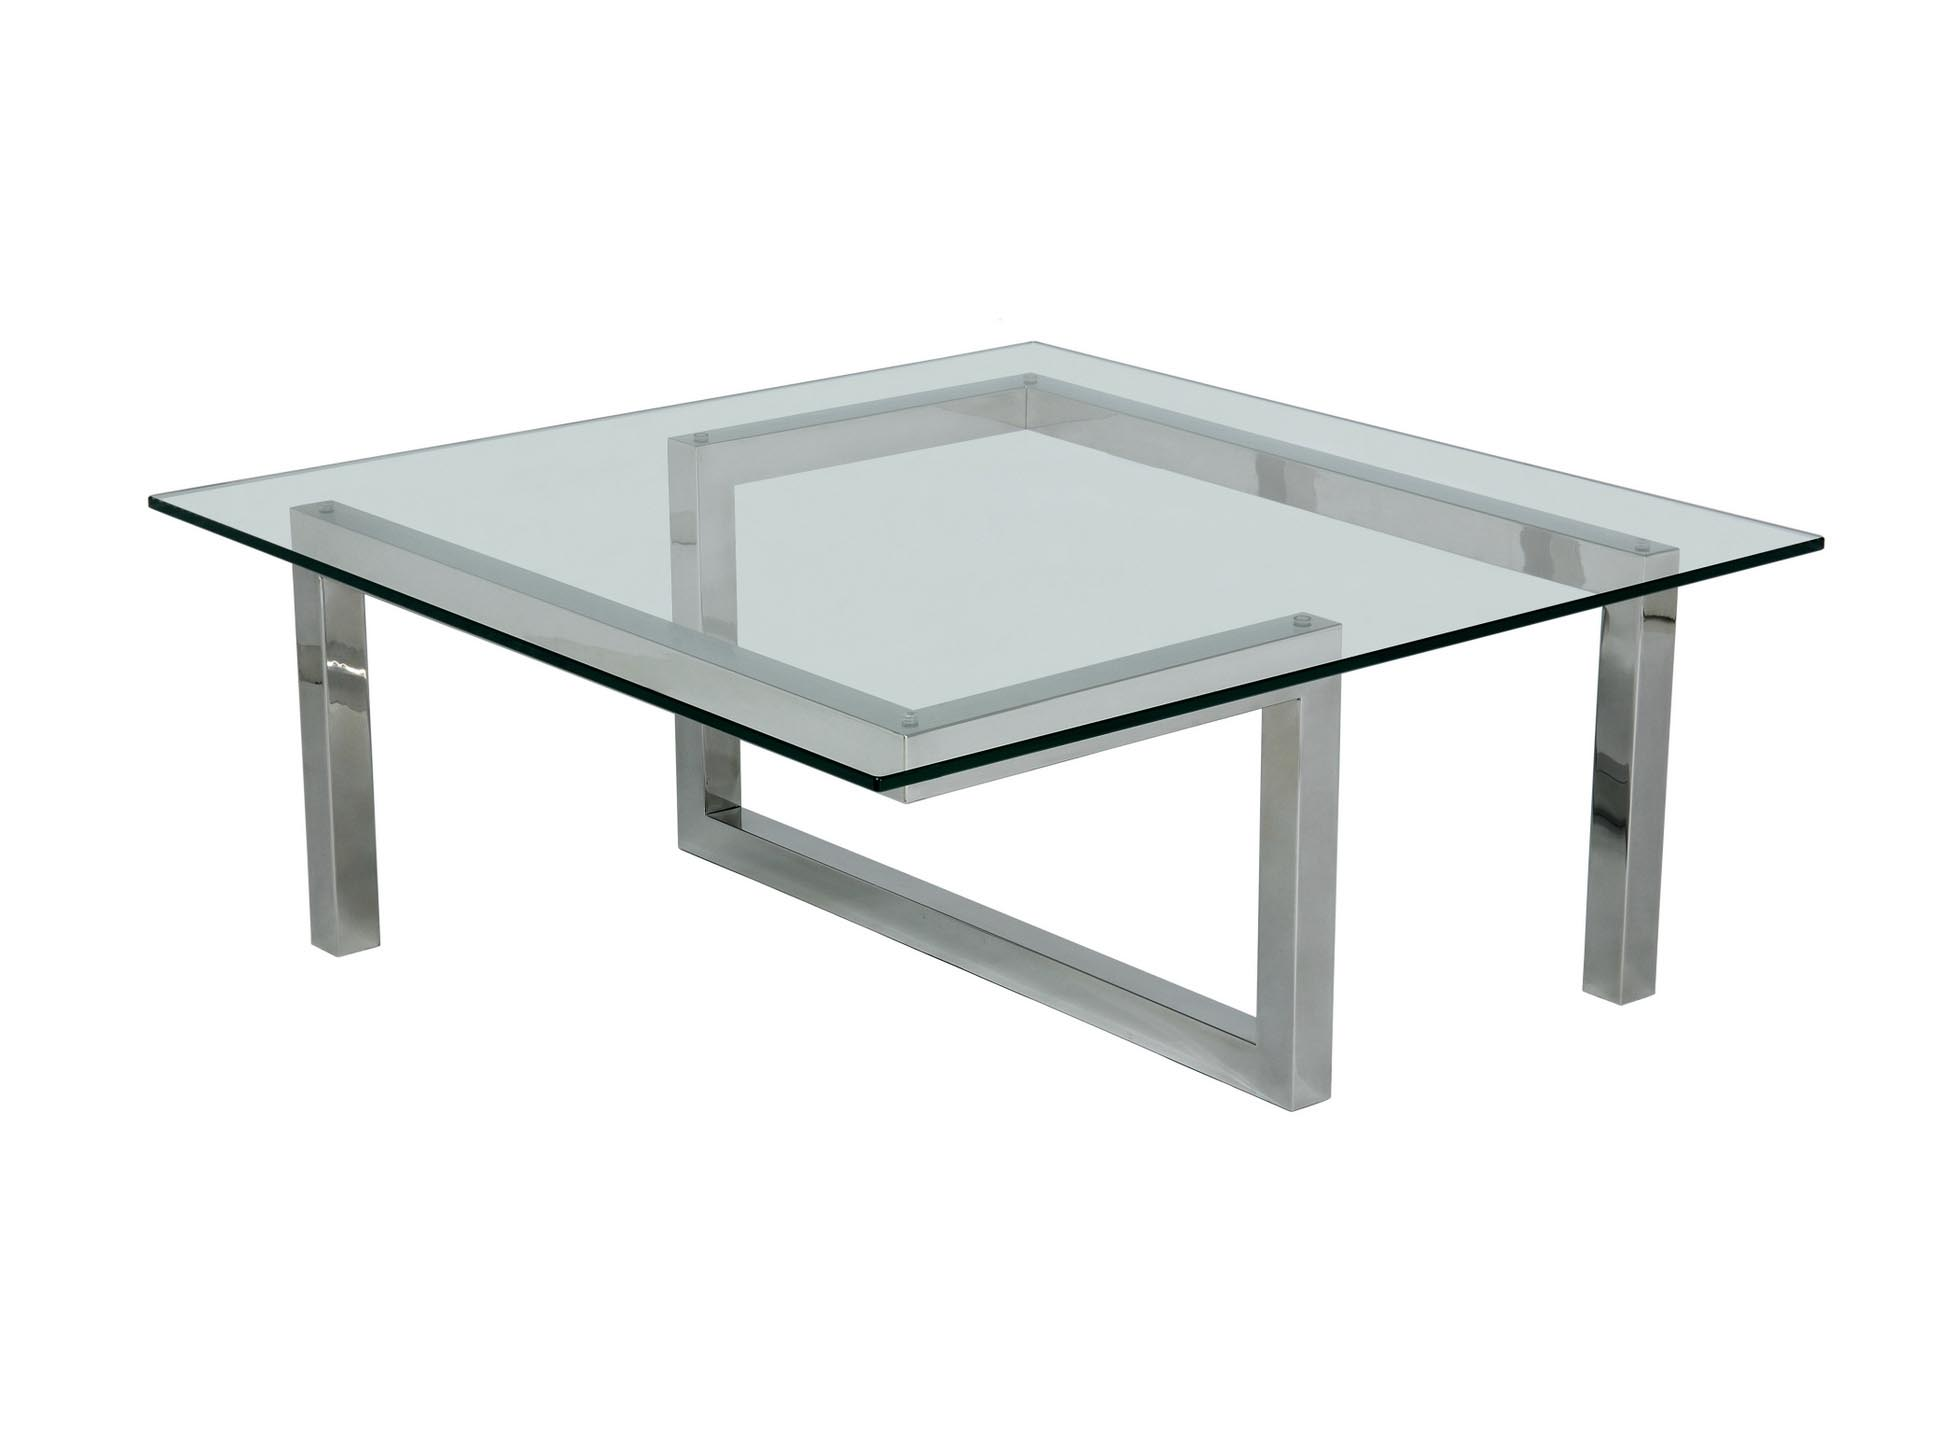 Stainless steel and glass coffee tables coffee table design ideas Metal and glass coffee table